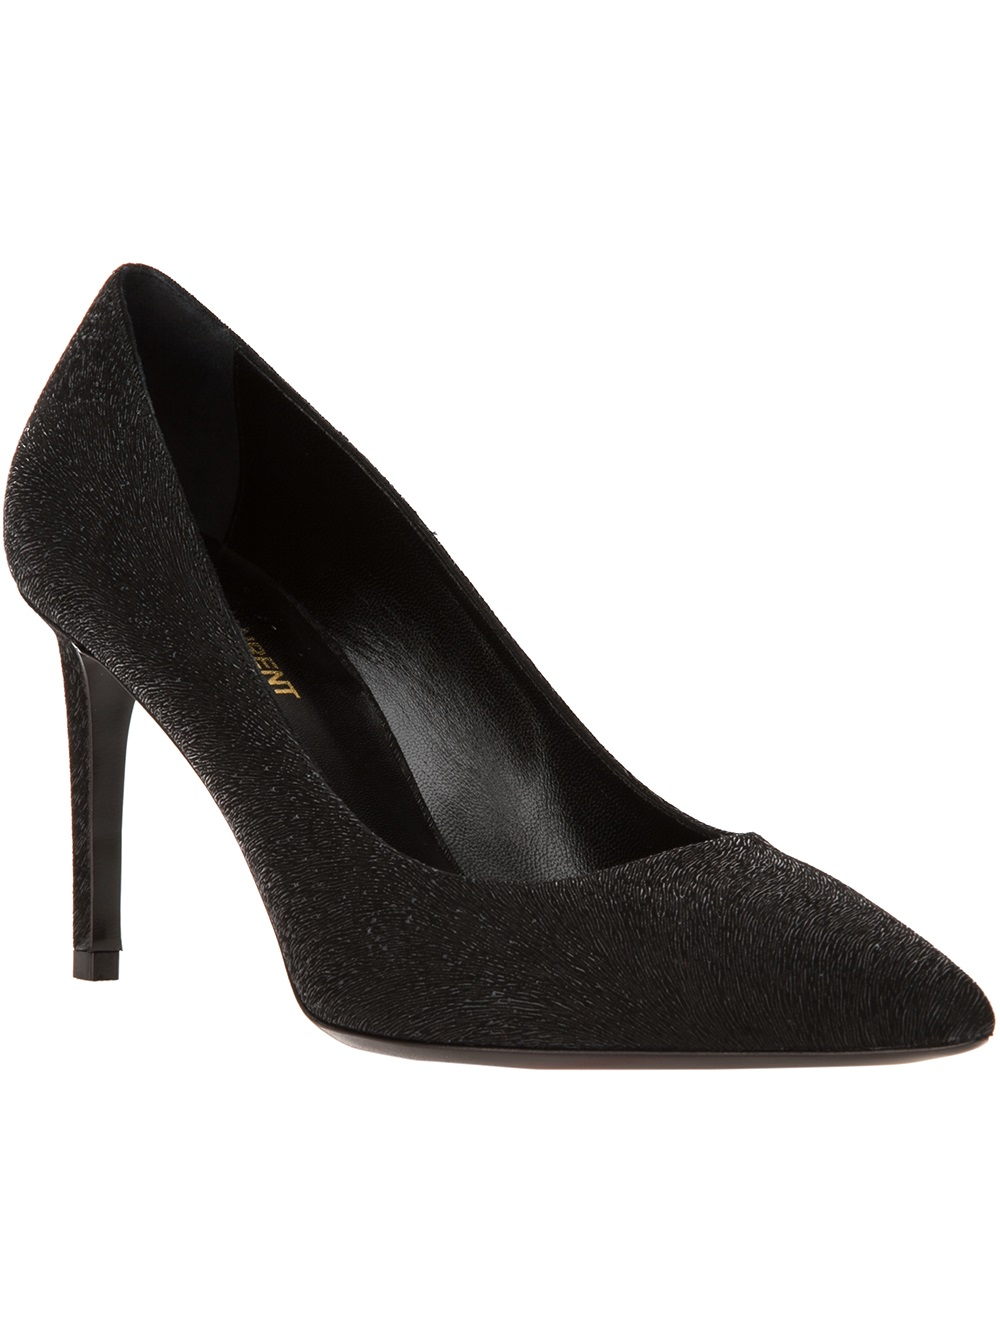 Pointy toe shoes have been a statement of fashion for a long time and now they have certainly made a sharp comeback. There are different types of shoes with pointy toes like platforms, flats, pumps, stilettos, boots and ballerinas.